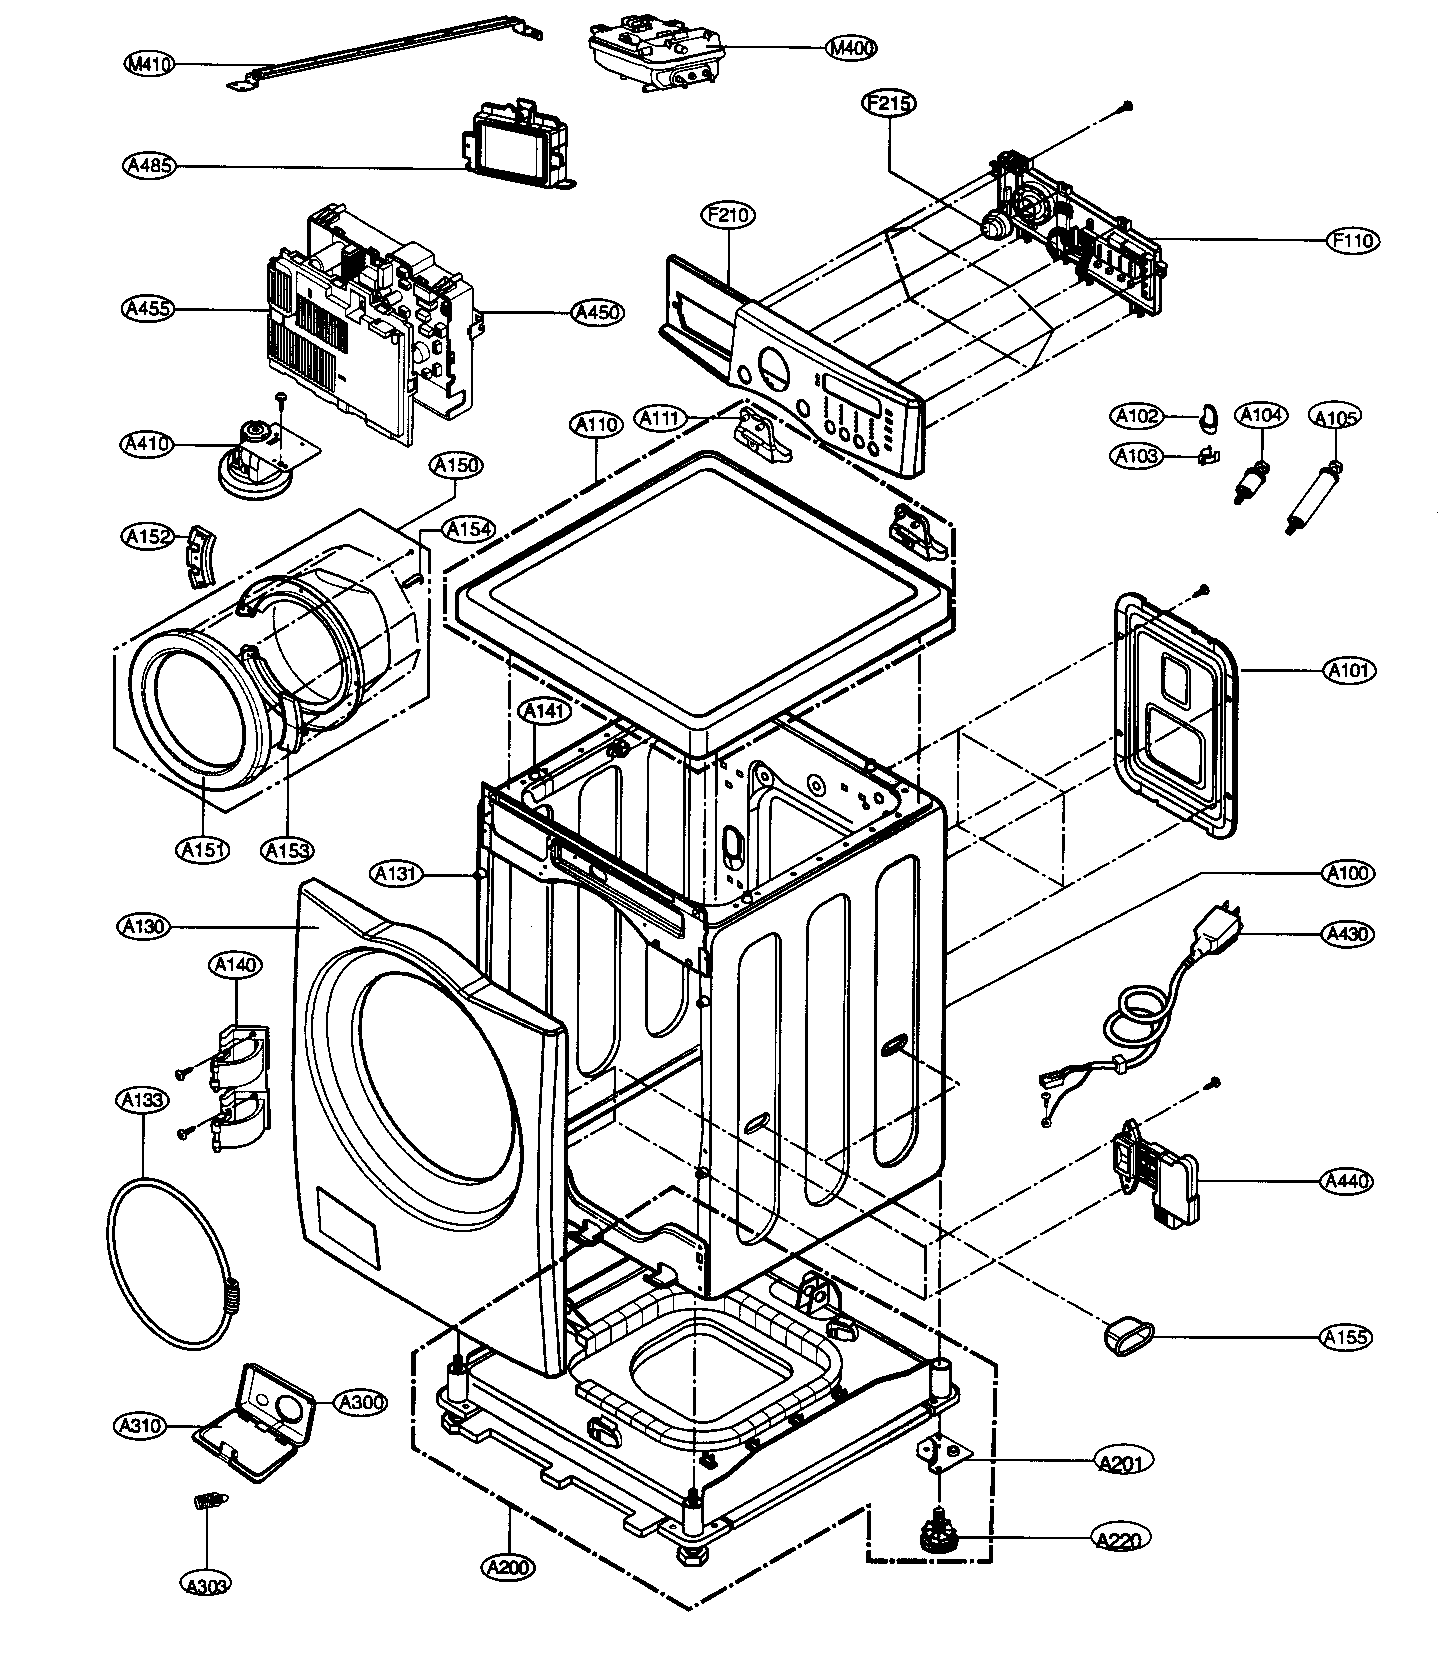 Wiring Diagram For Lg Lp Wnry2